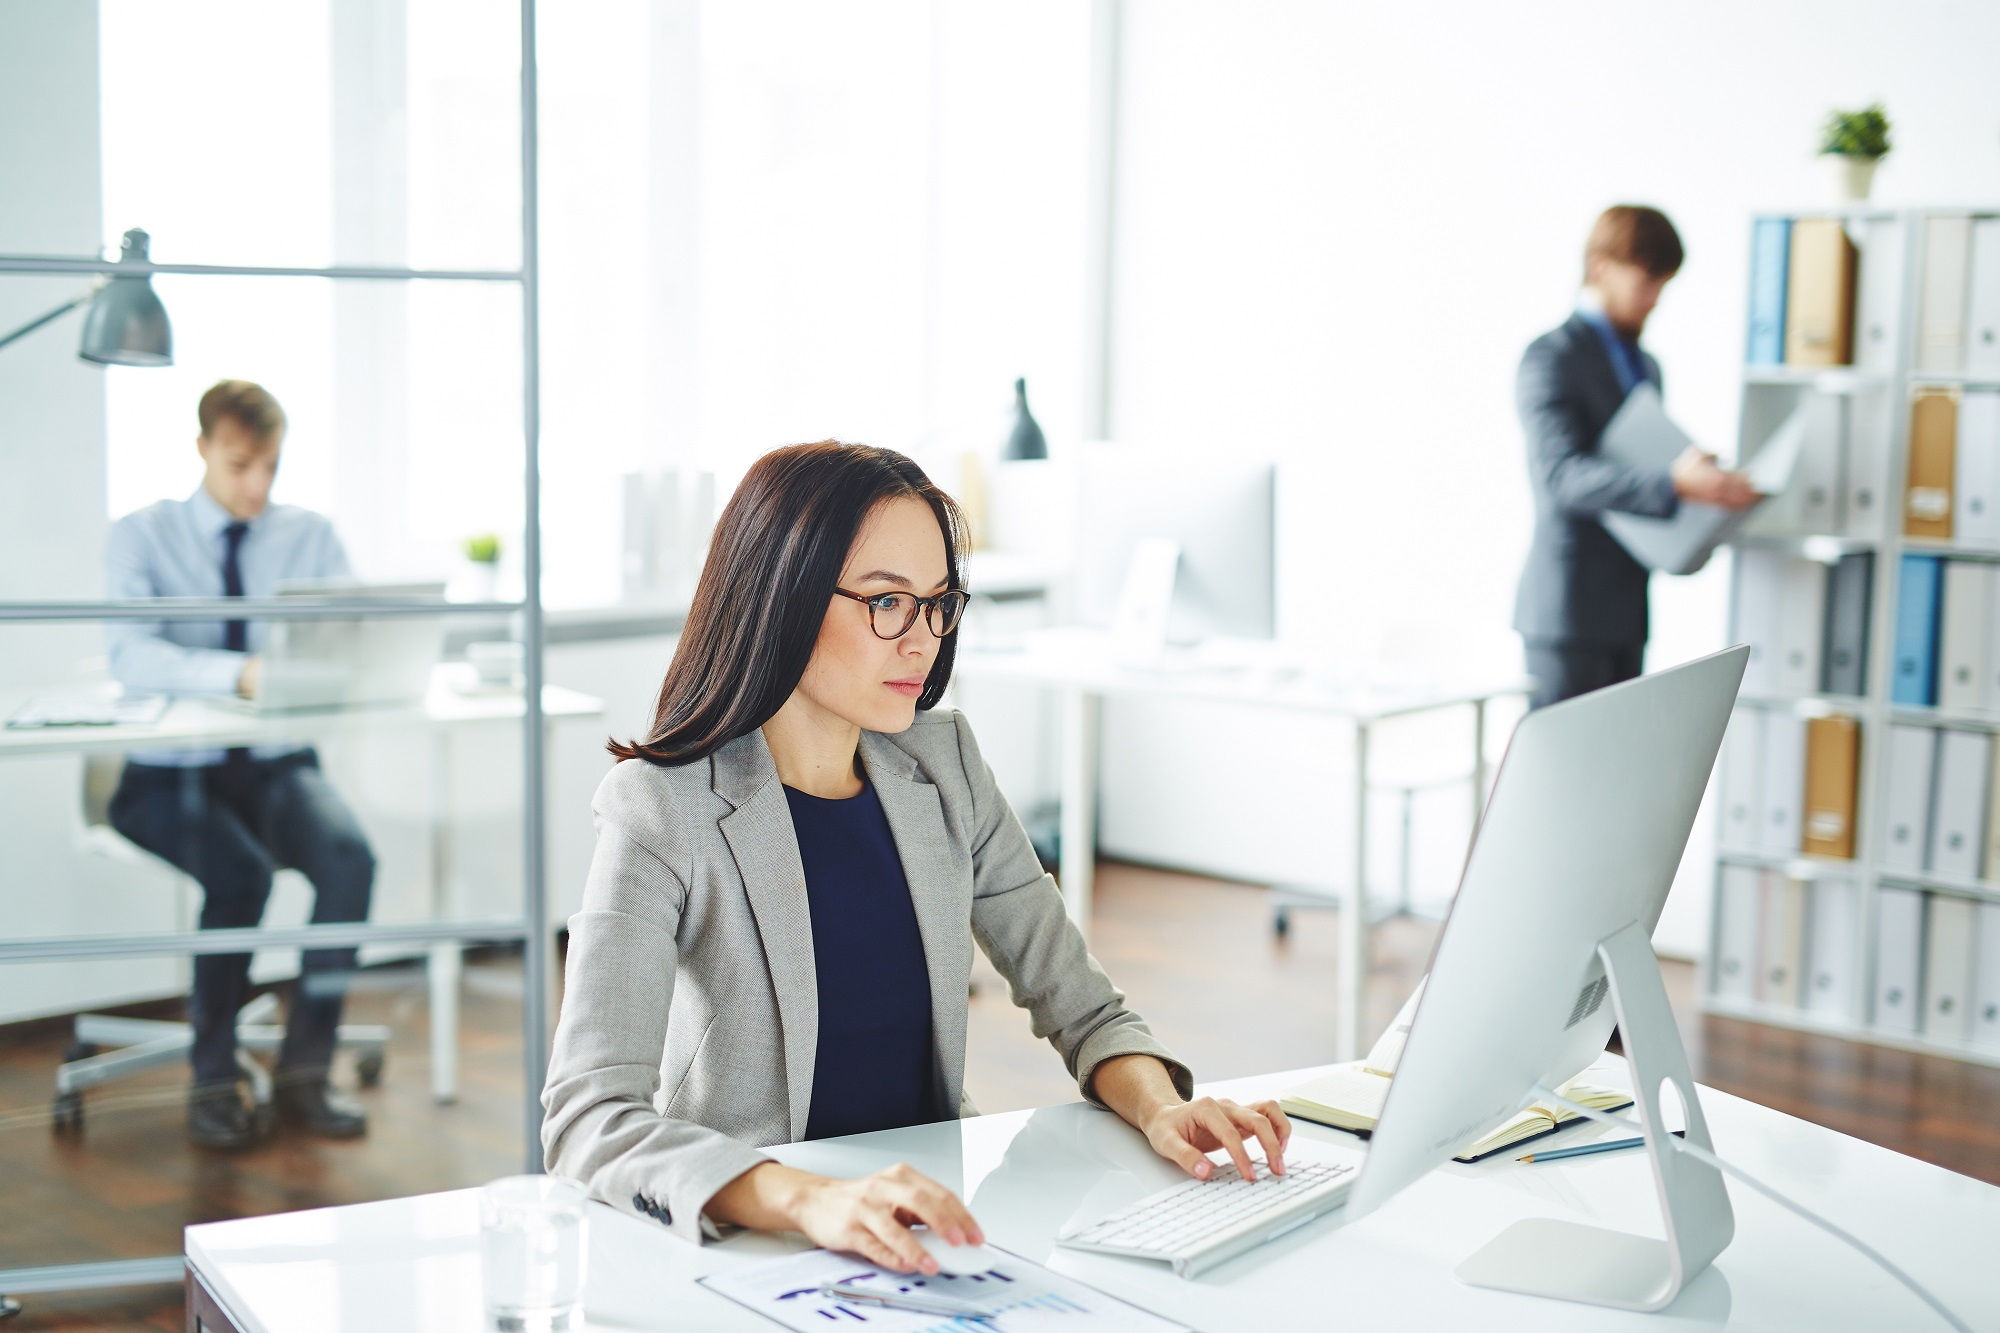 Pretty office worker typing in working environment